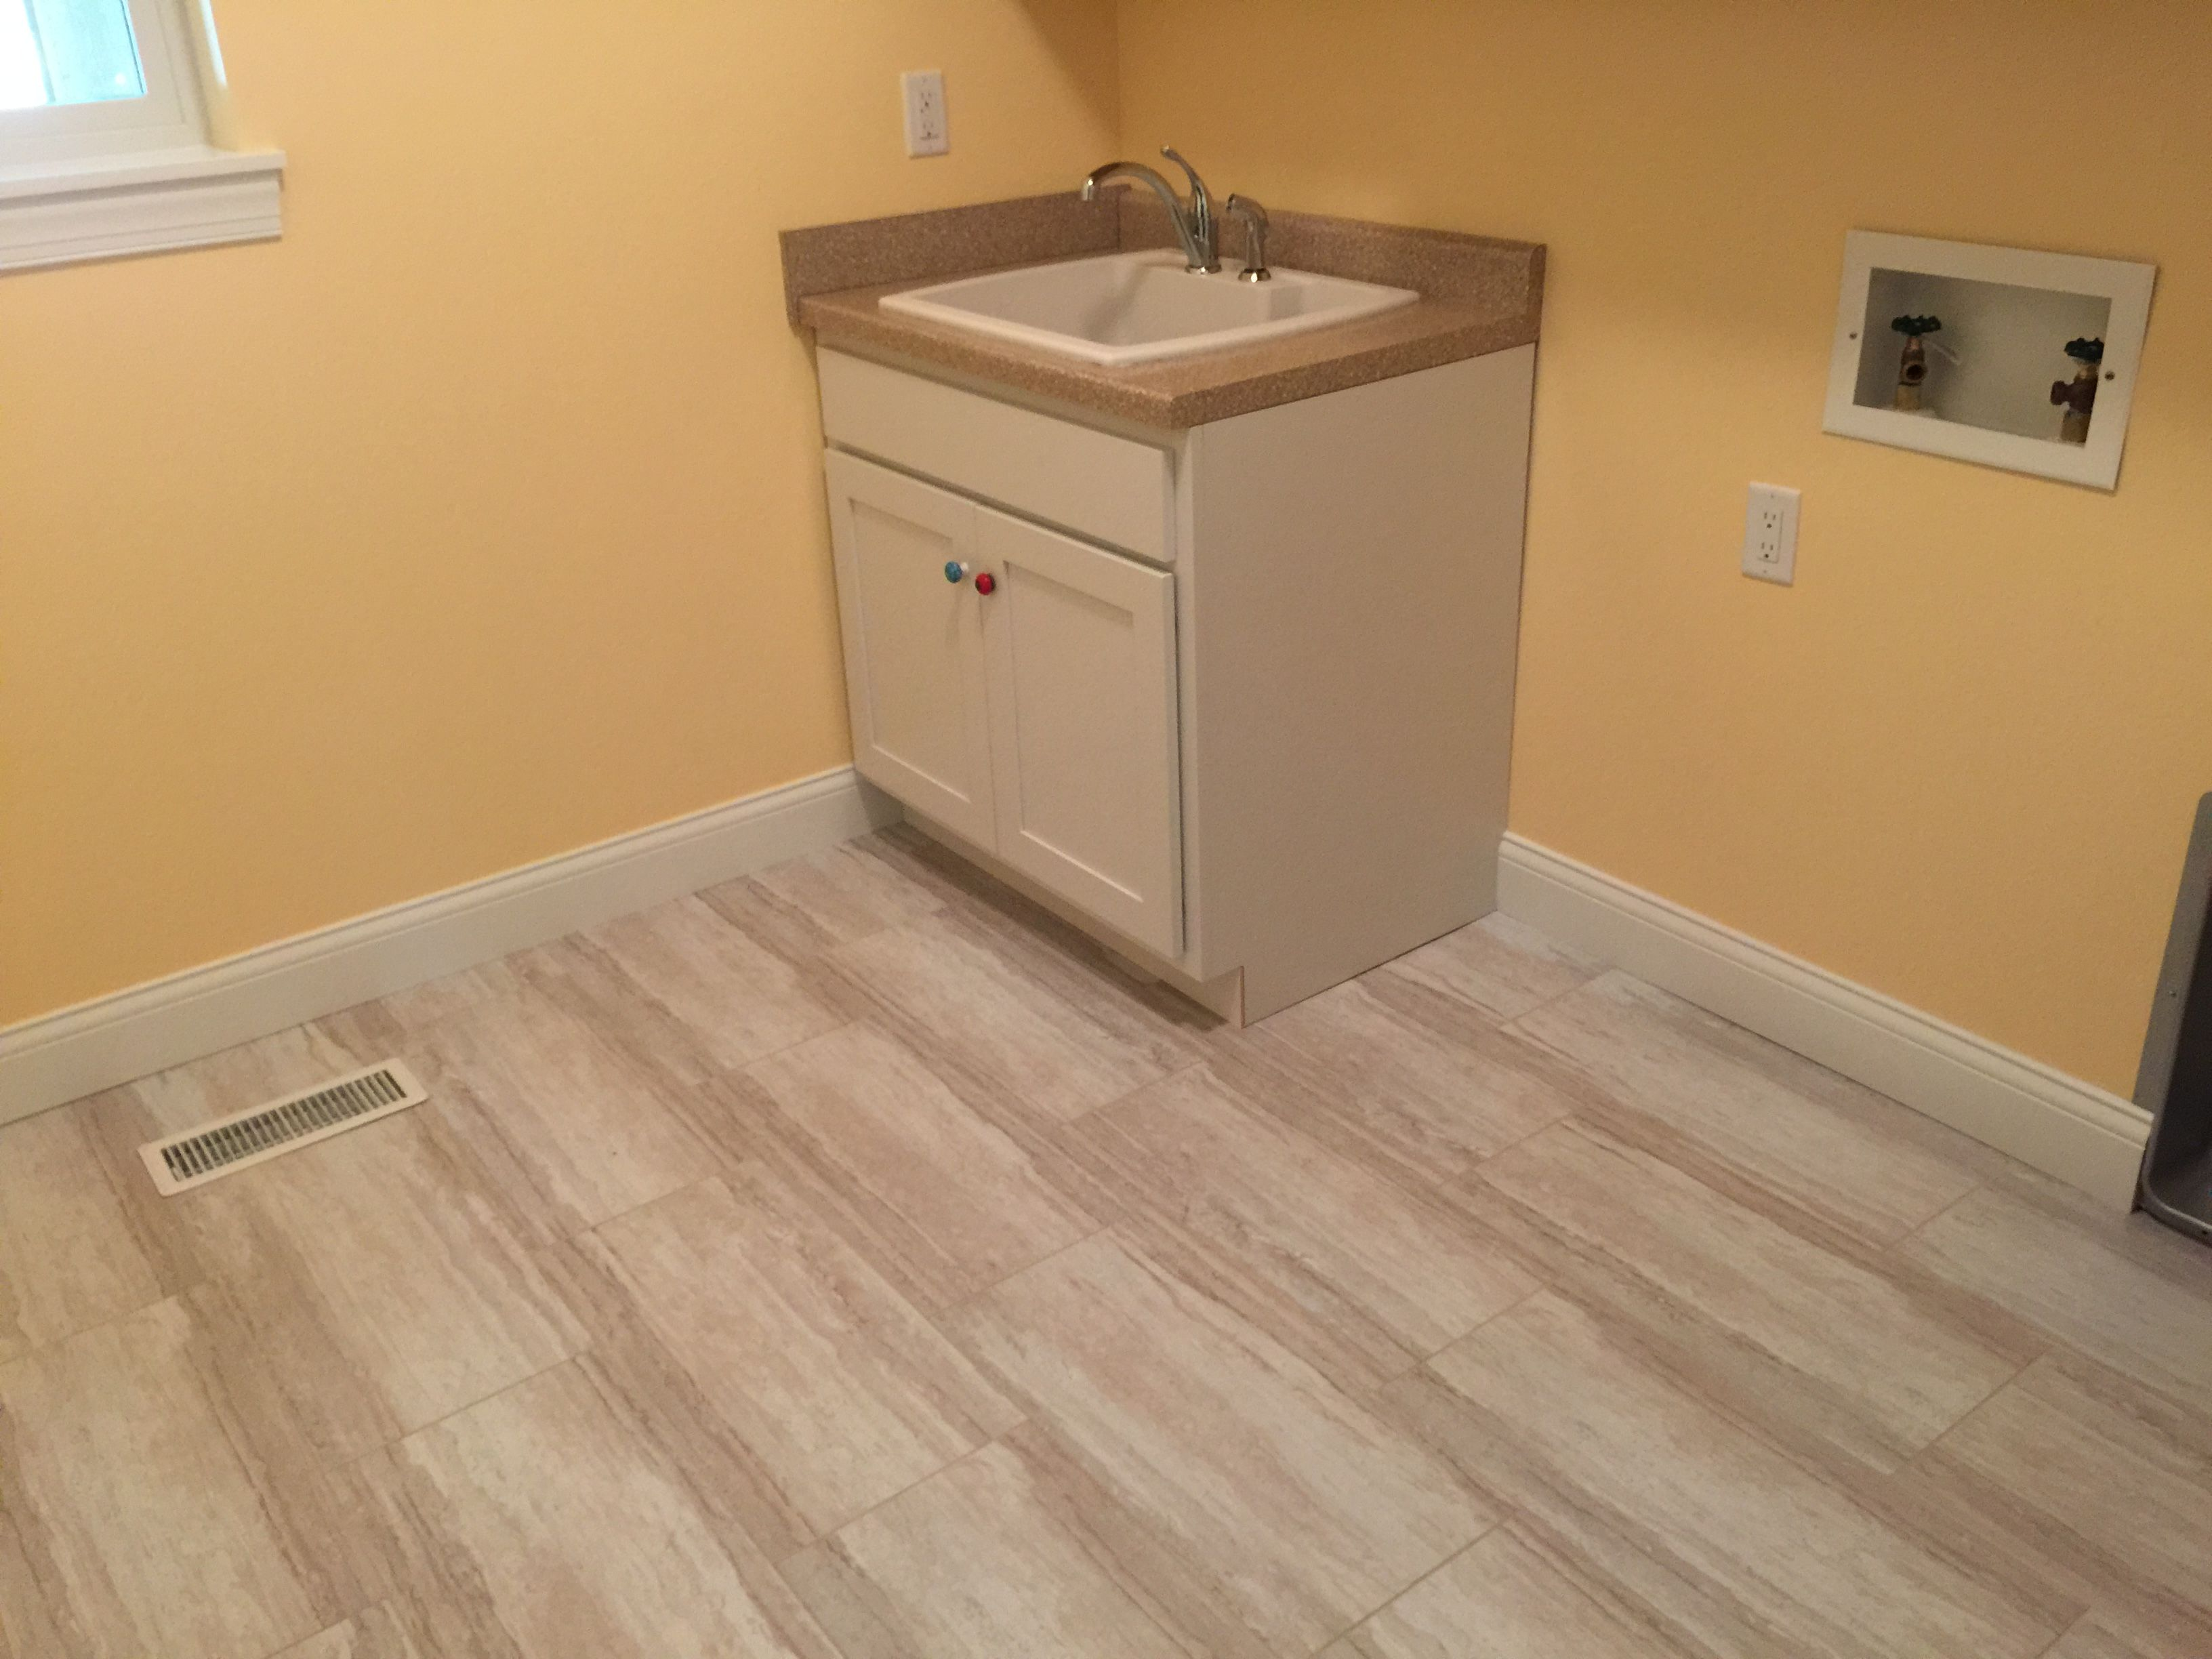 Luxury Vinyl tile grouted and installed in a staggered